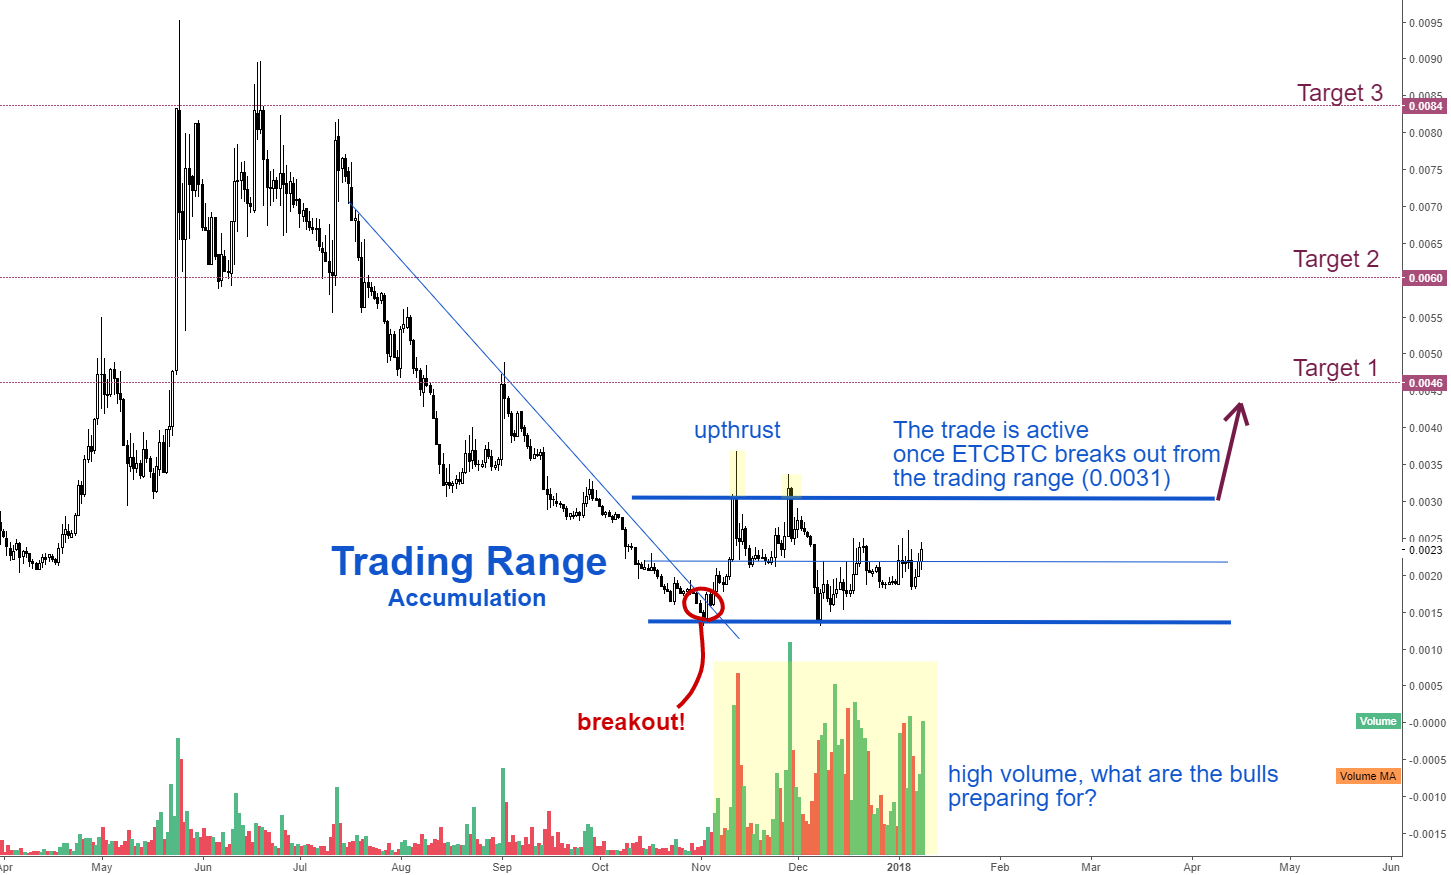 ETCBTC - Strong BULLISH move ahead!